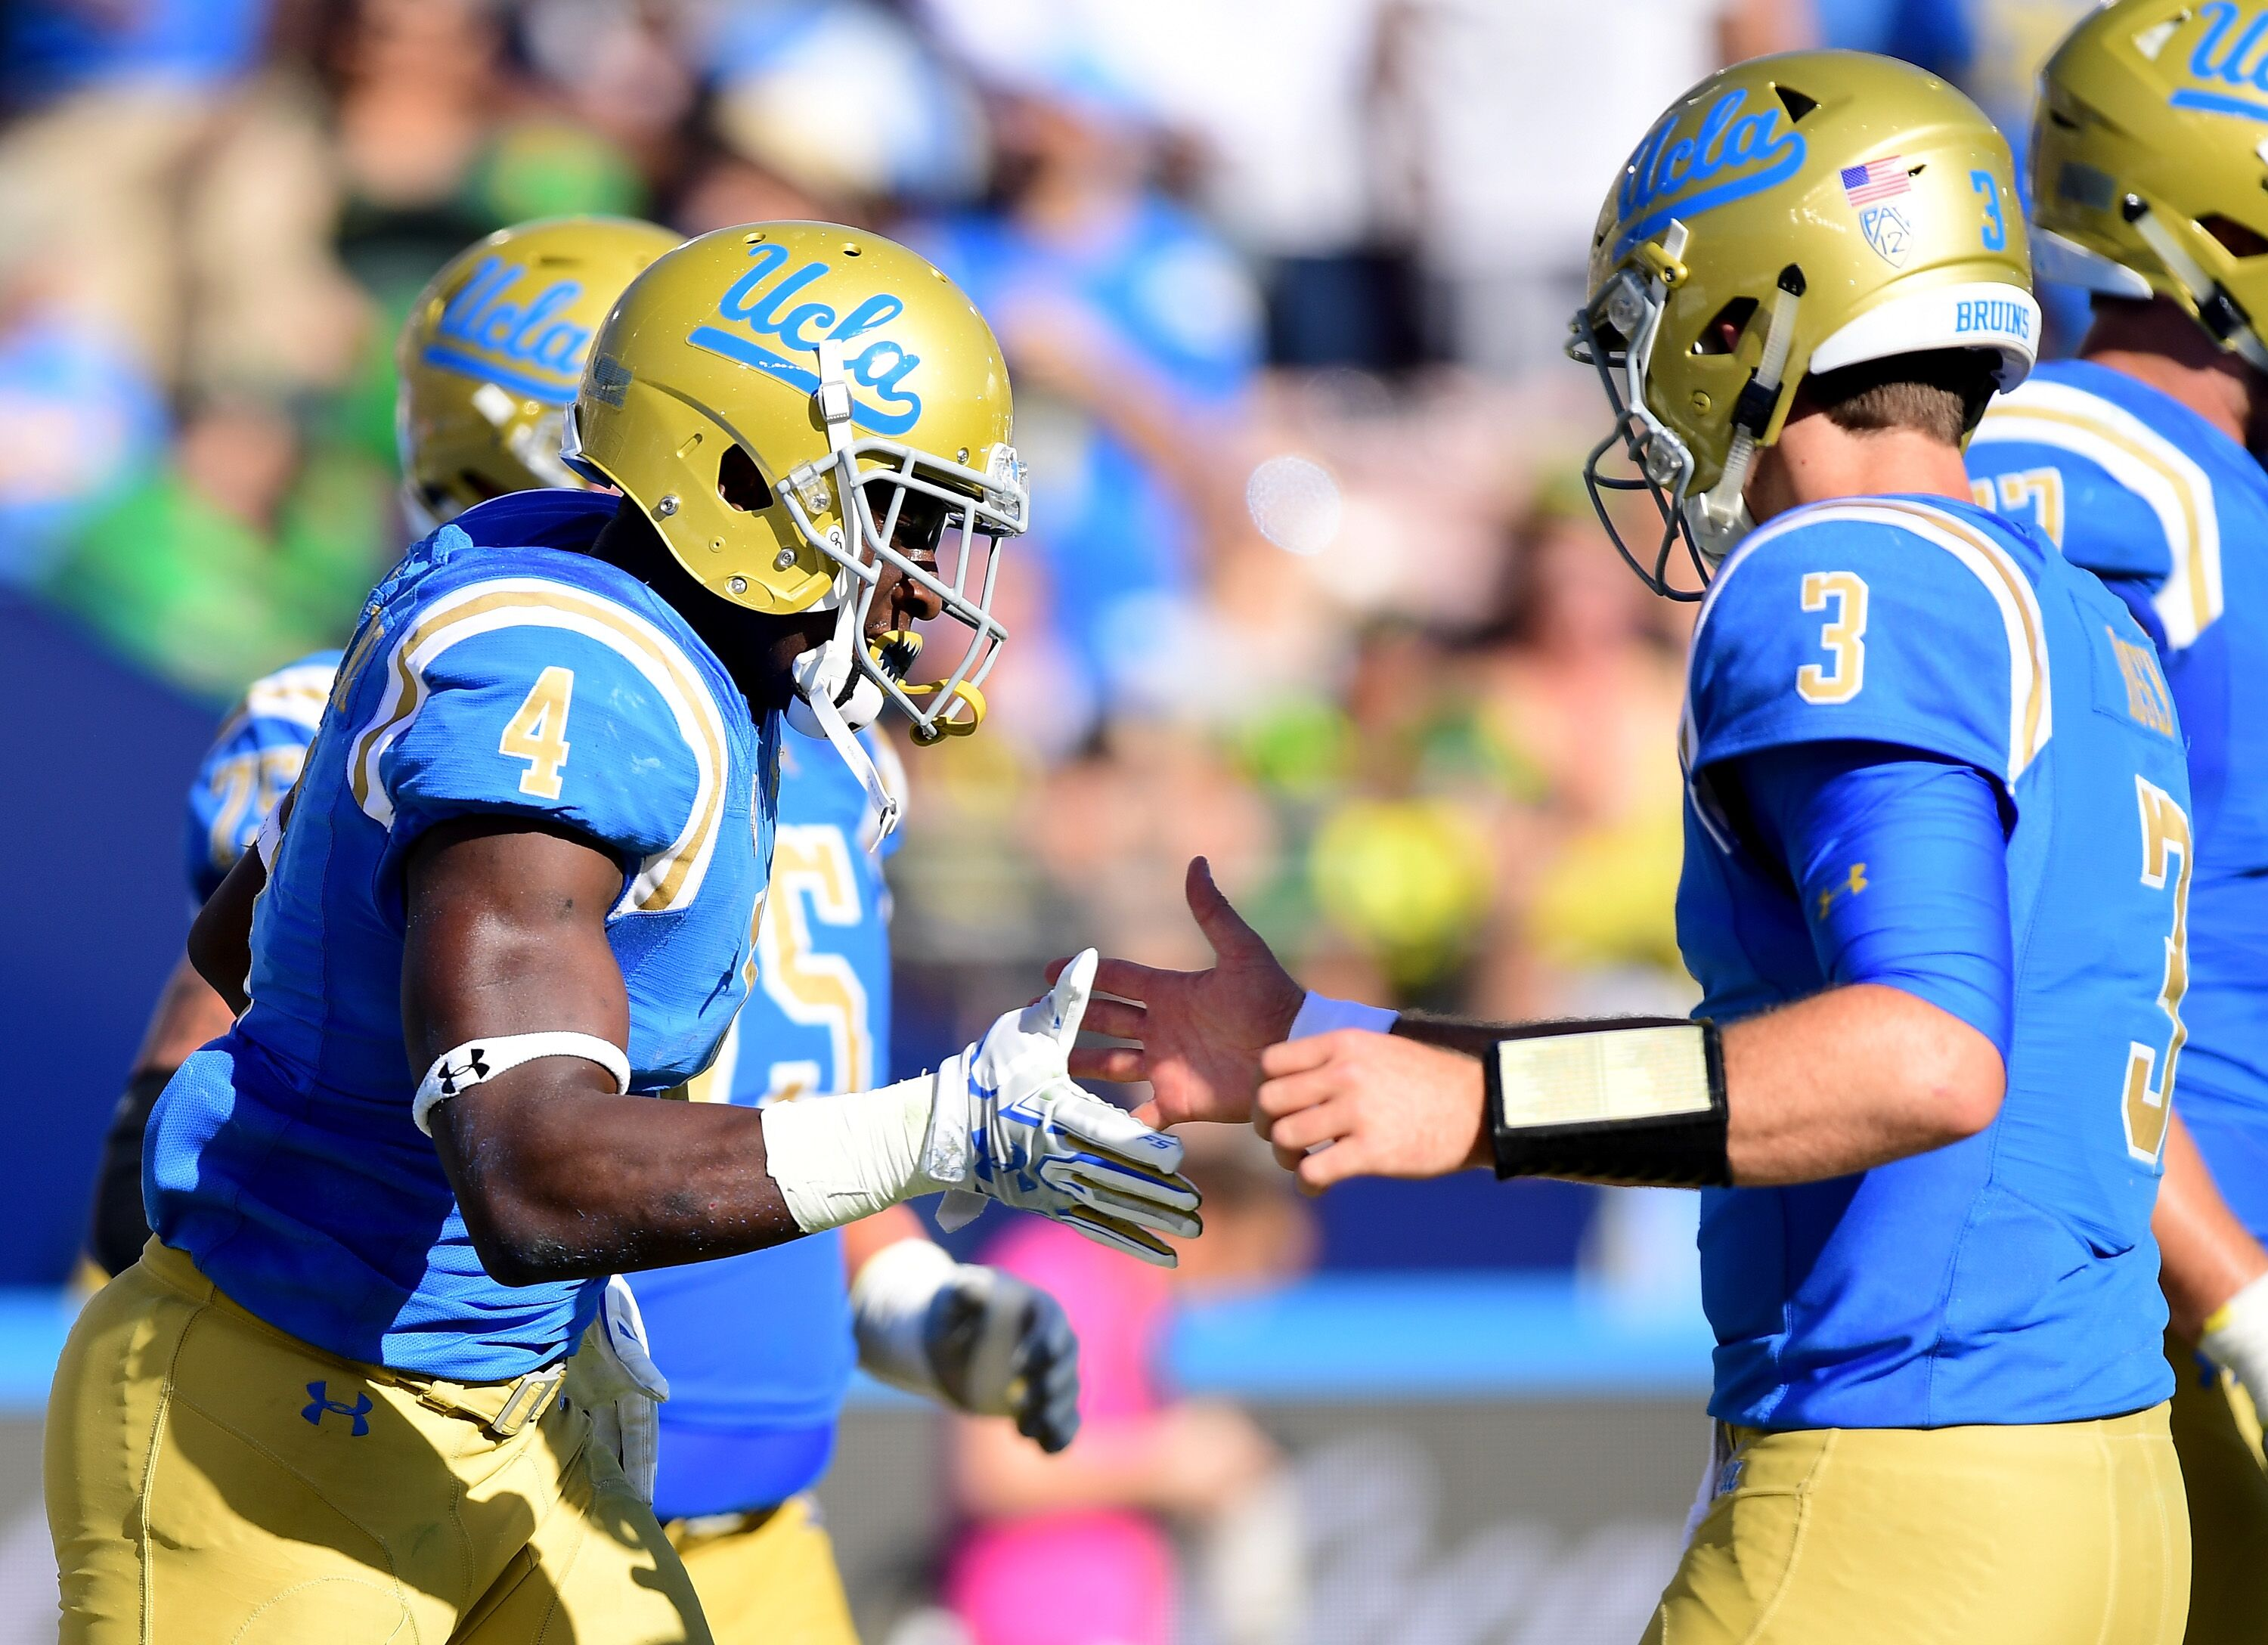 UCLA Football: How sustainable is the Bruins' success?